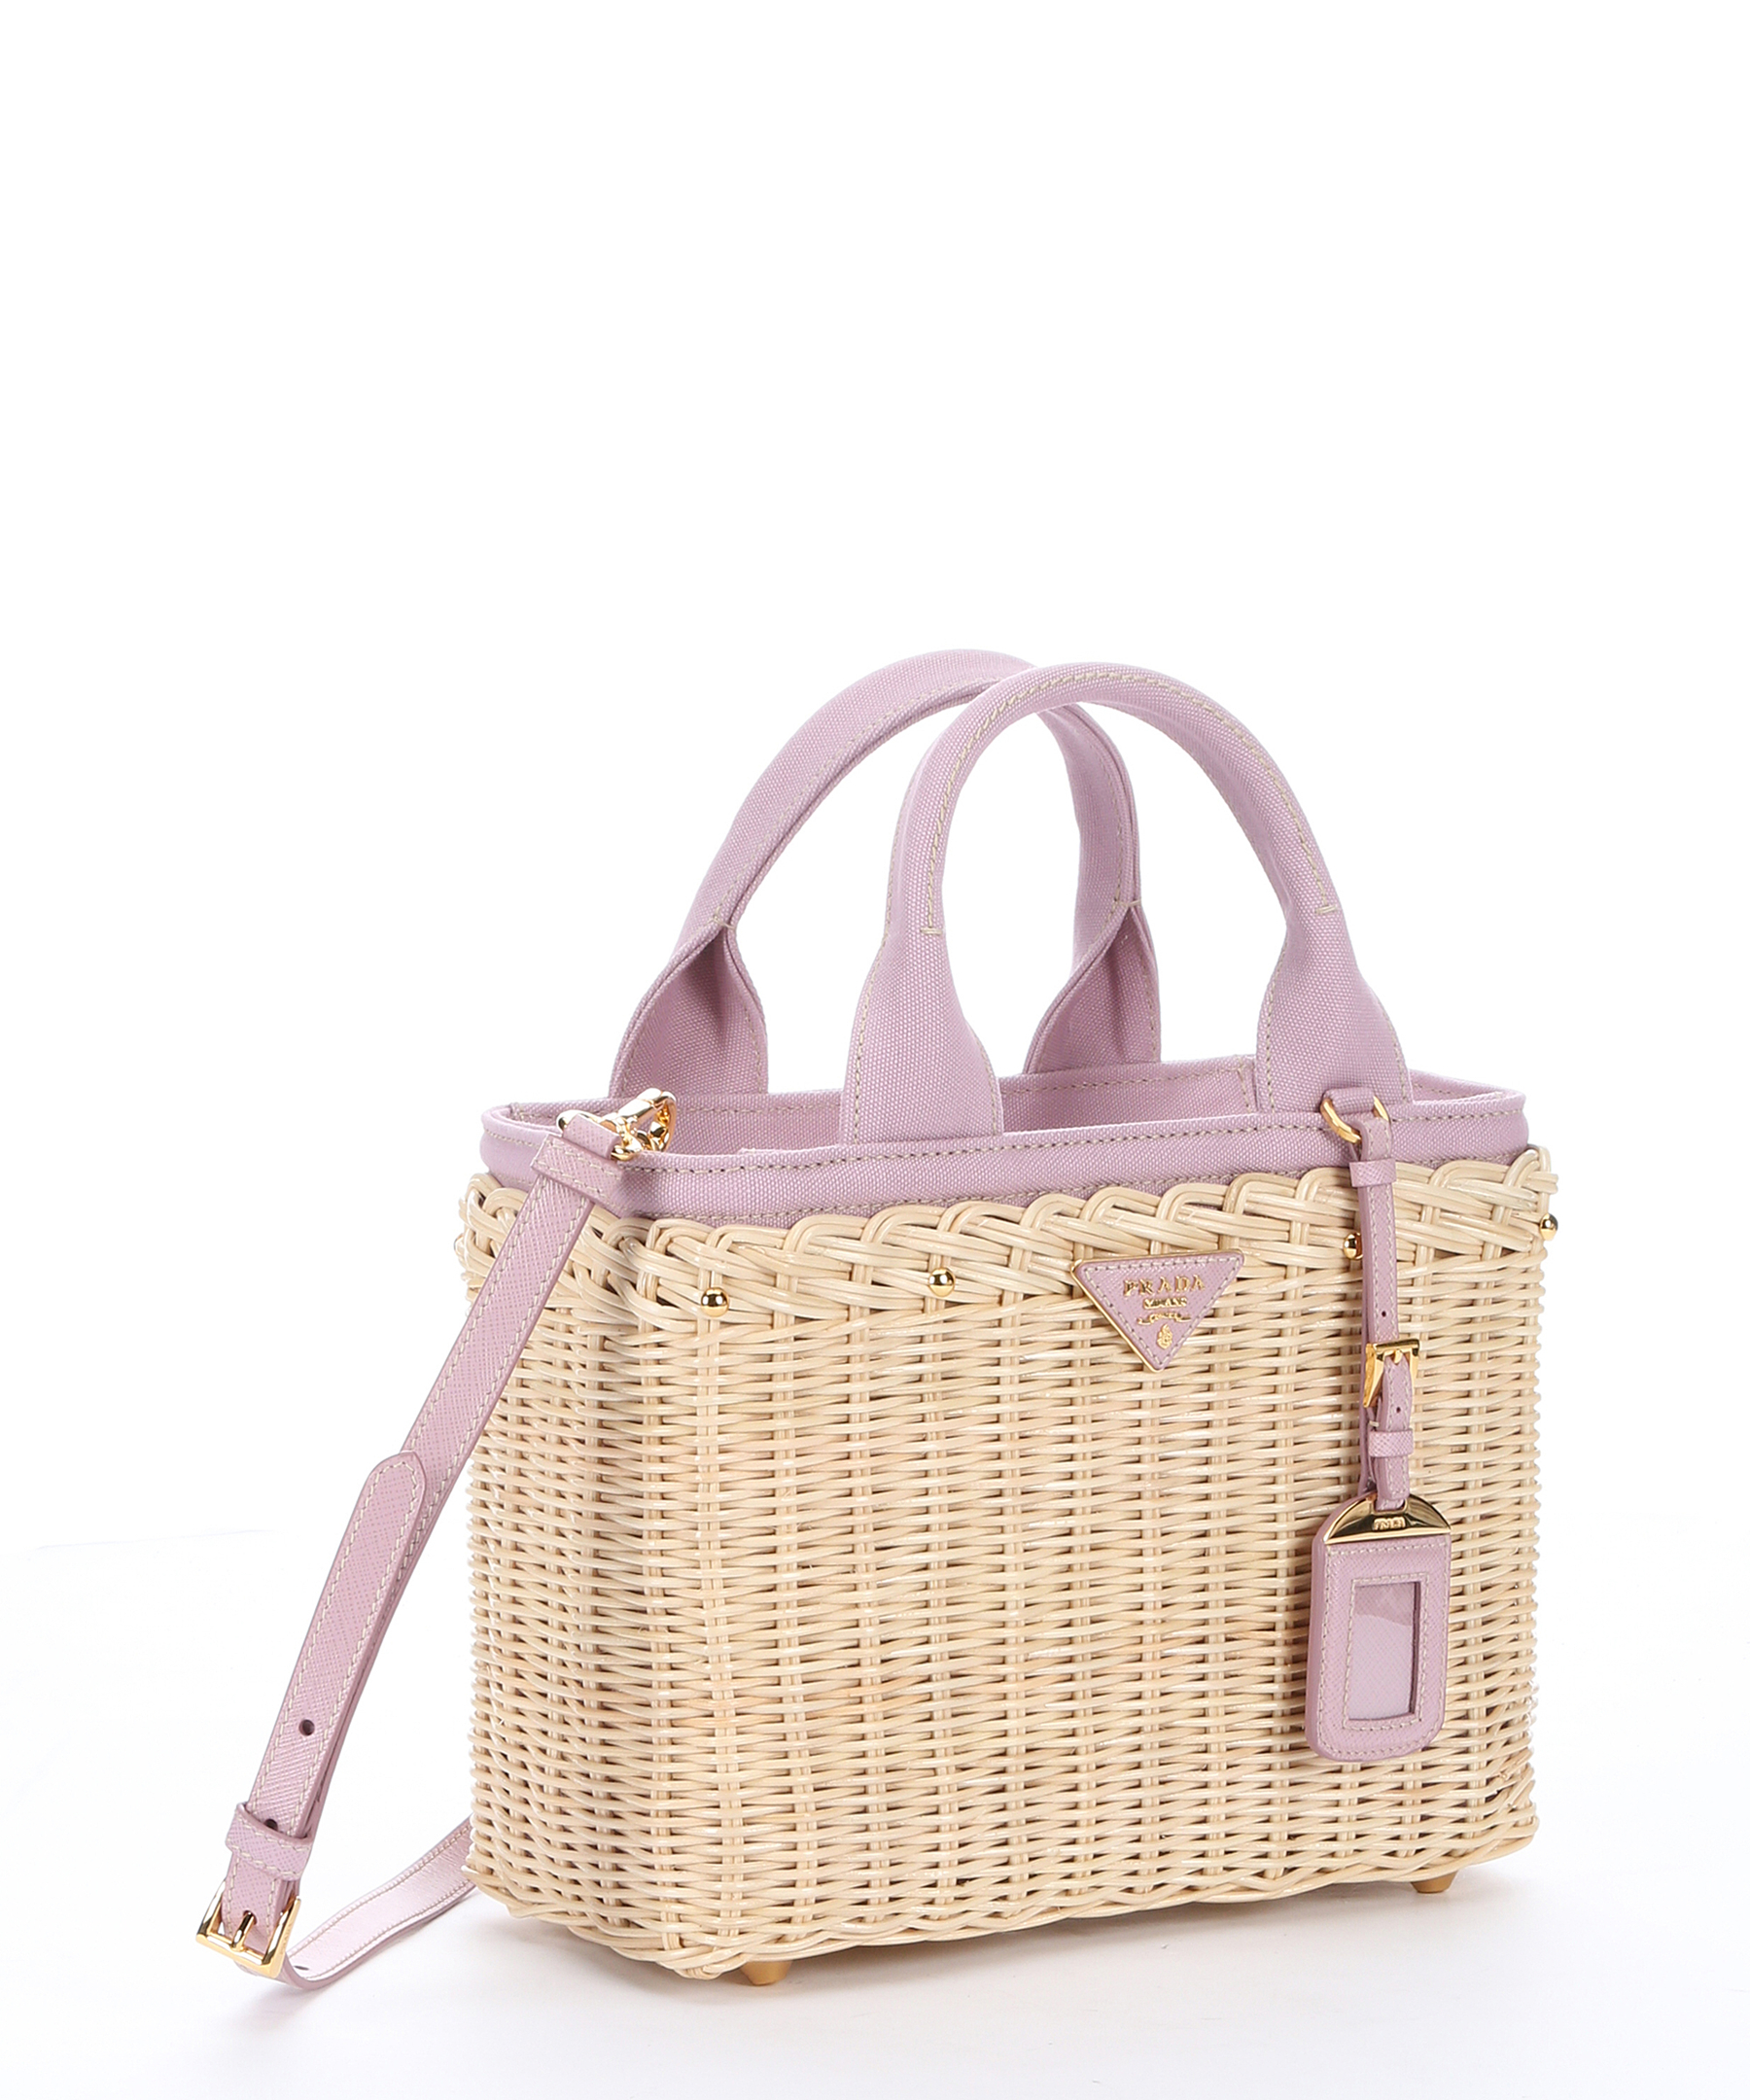 829a07387b28 Prada Wicker Bag With Patch 1bg835 Black. Prada Natural Wicker And Rose  Canvas ...